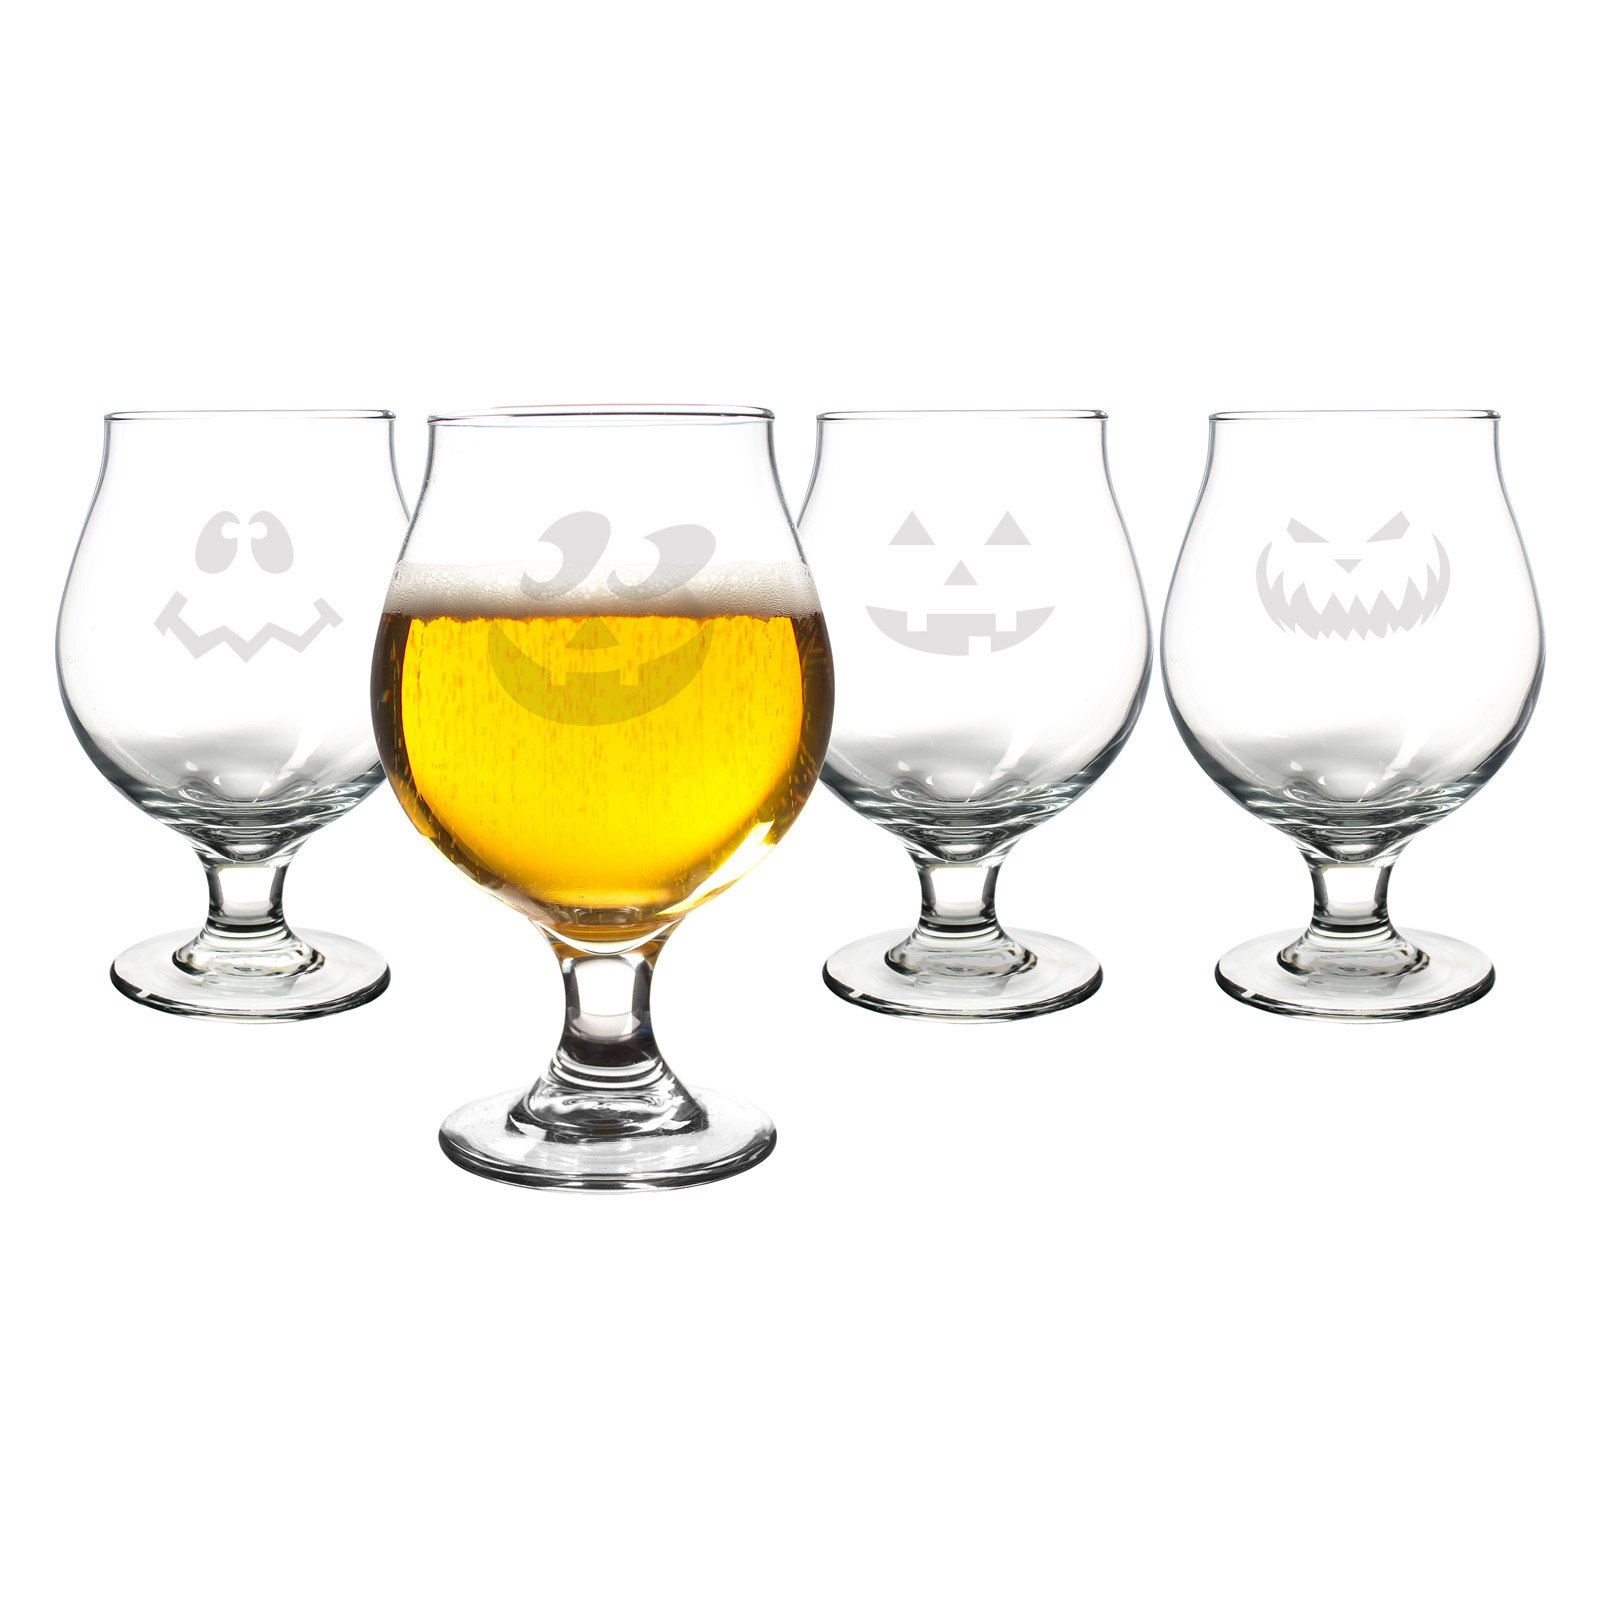 Cathys Concepts Jack-O-Lantern Belgian Beer Glasses Set of 4 by Cathys Concepts Inc